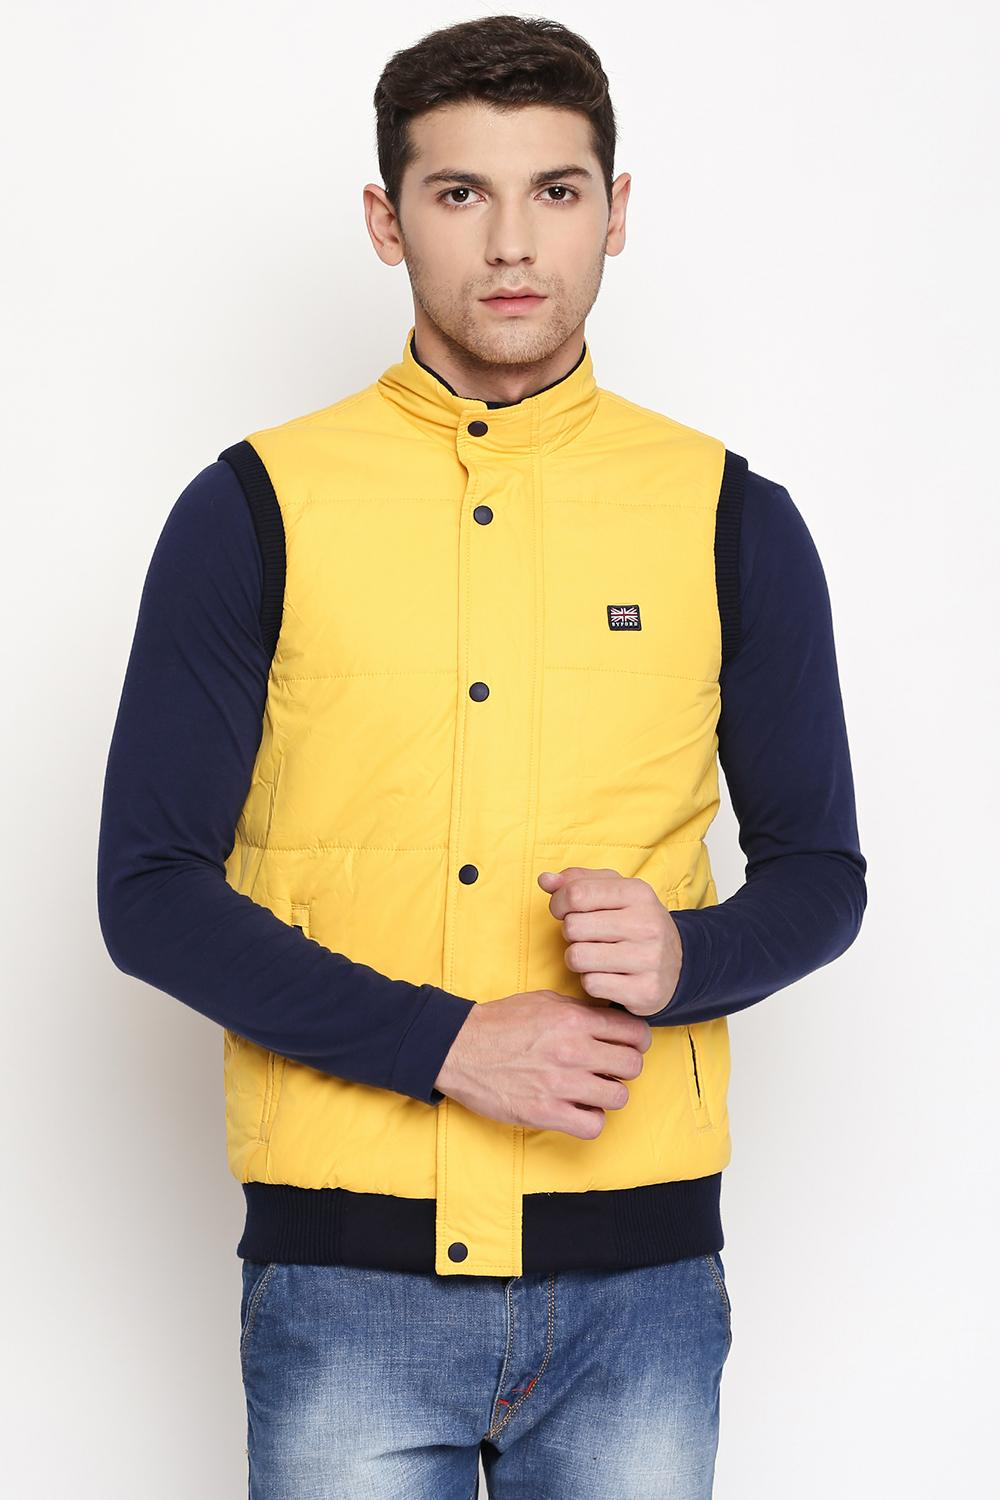 5d4a03d9 Shop Branded Jackets for Men Online in India at Pantaloons Online Store